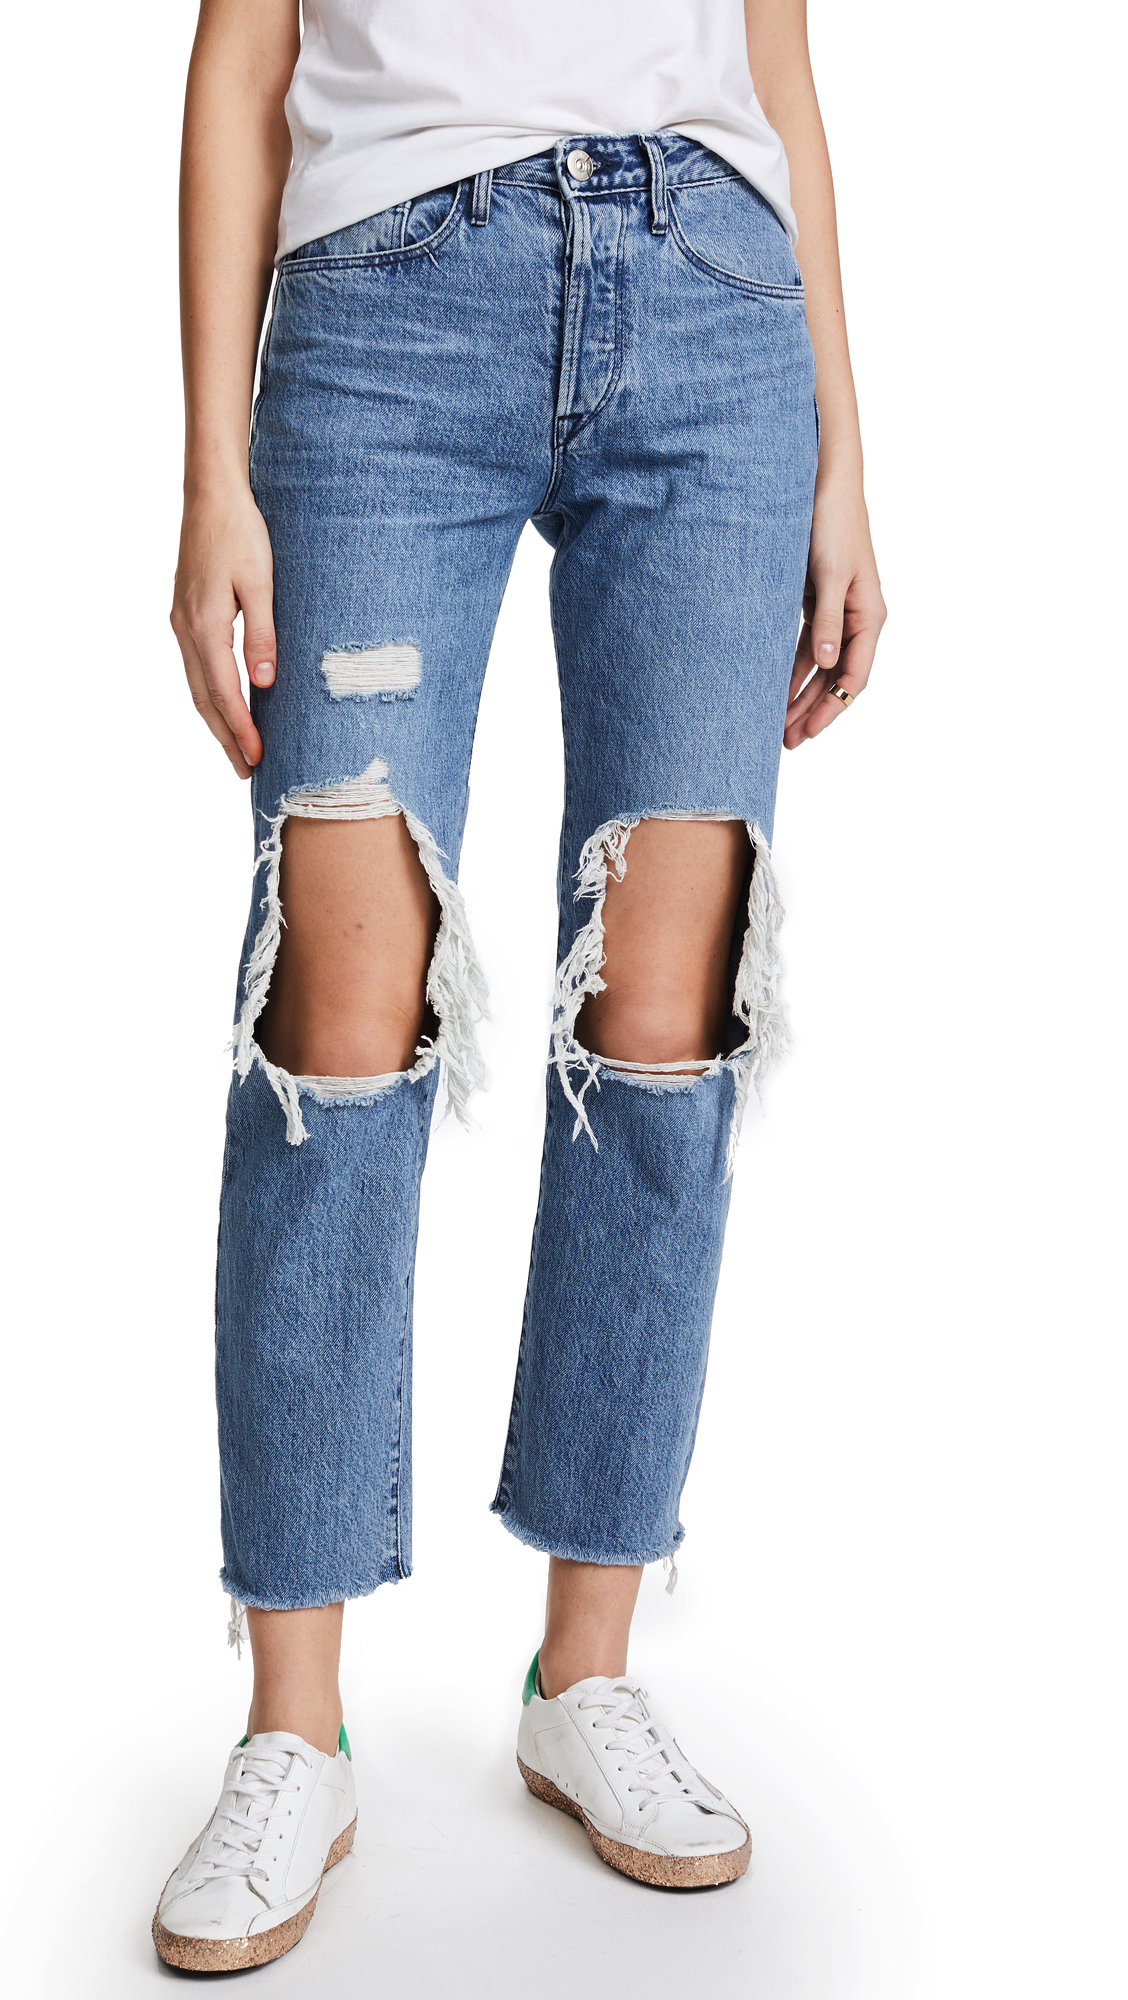 3x1 W3 Higher Ground BF Crop Jeans In Clutch